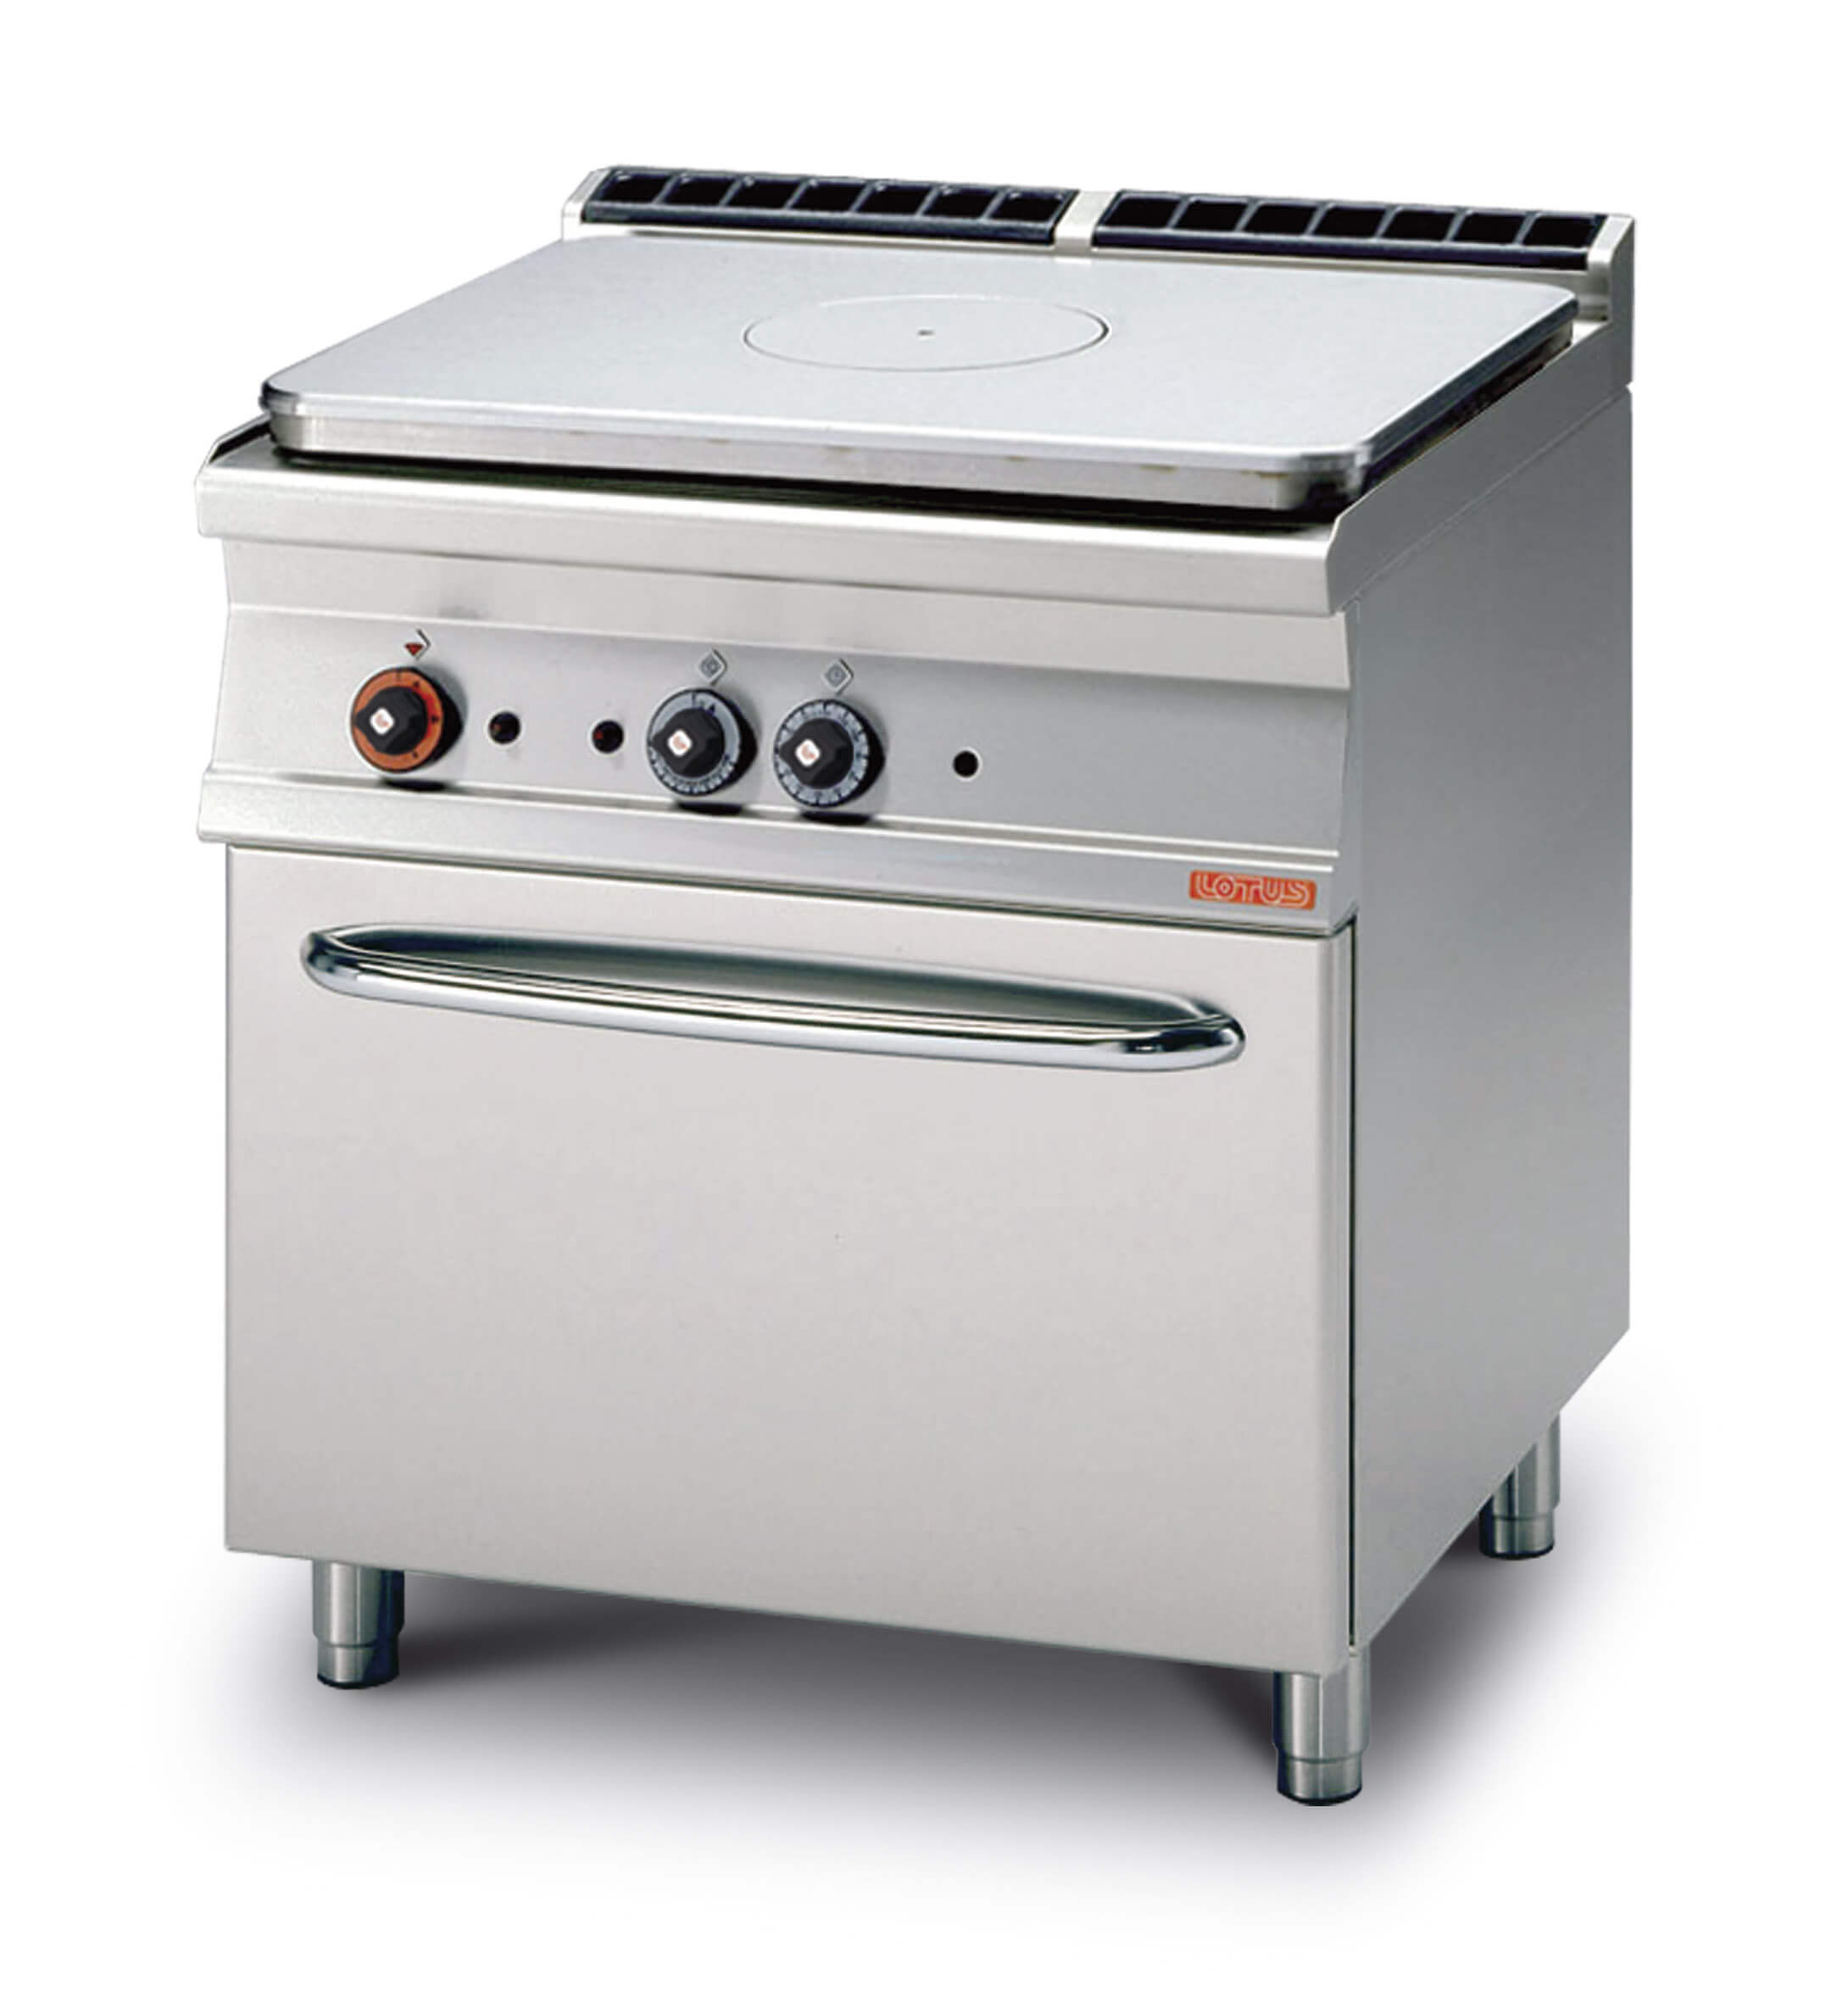 Almani kitchen 70 superlotus - Gas electric oven best choice cooking ...